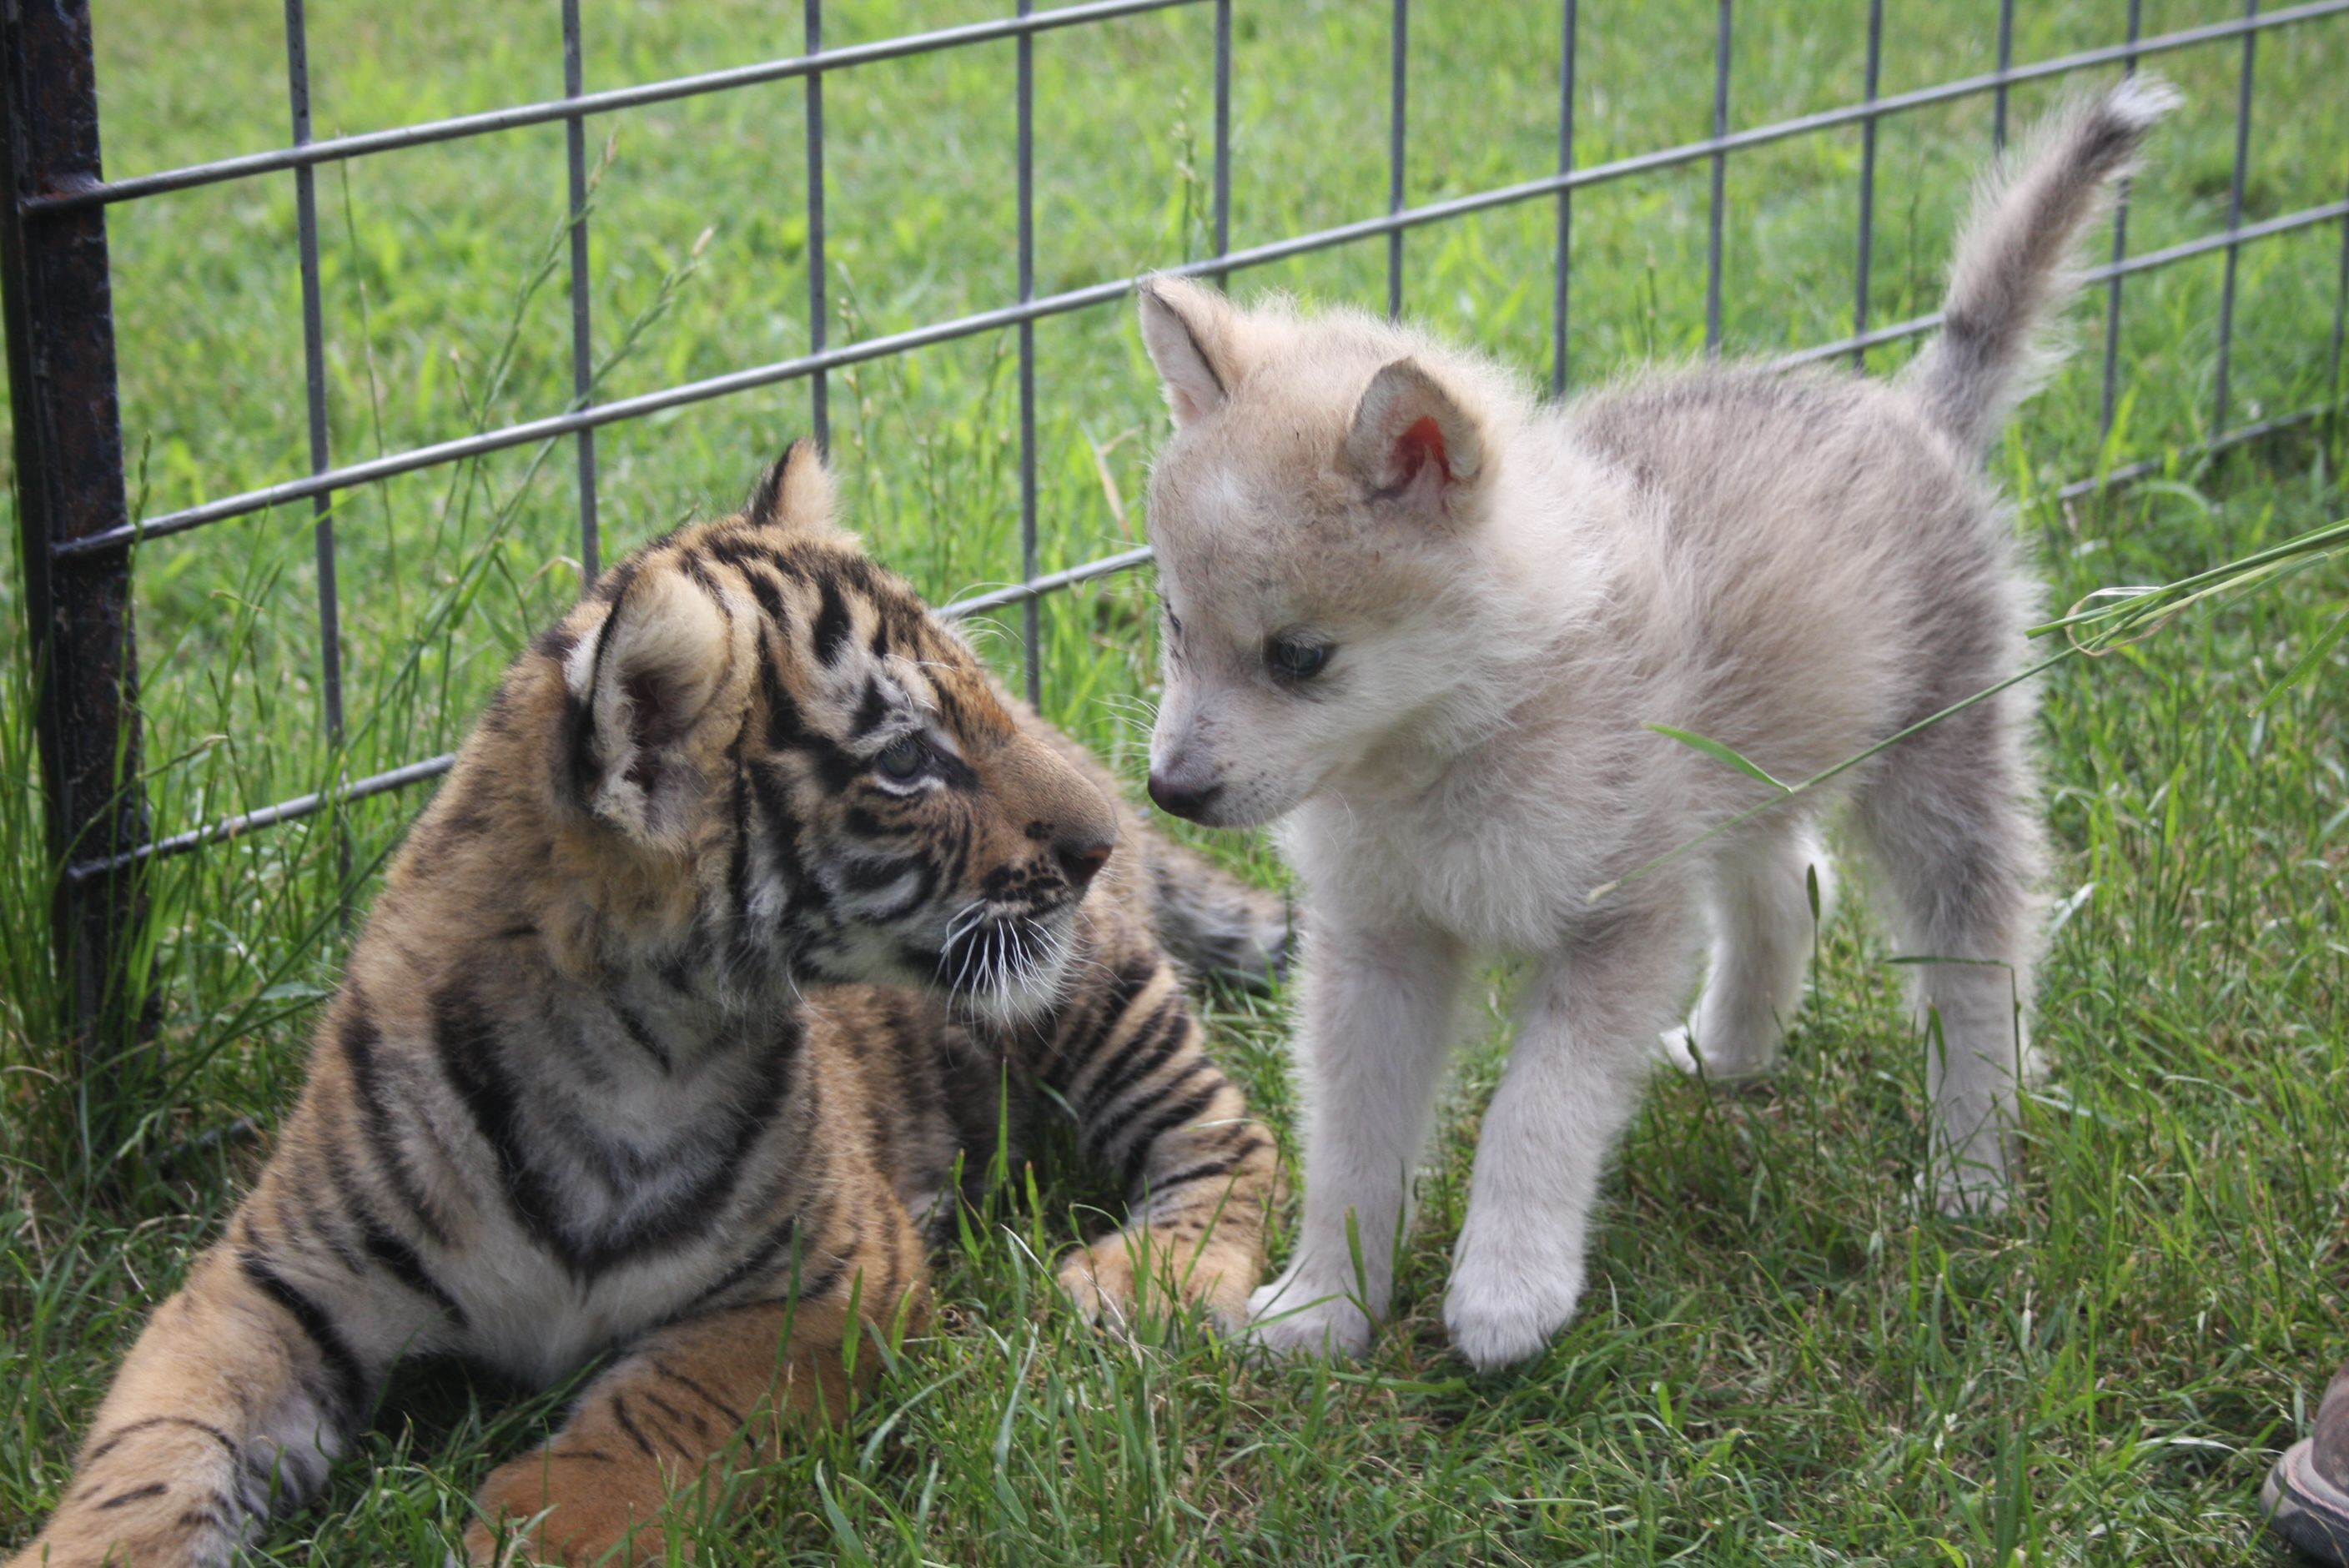 These two are sooooo cute!!! the baby wolf and baby tiger